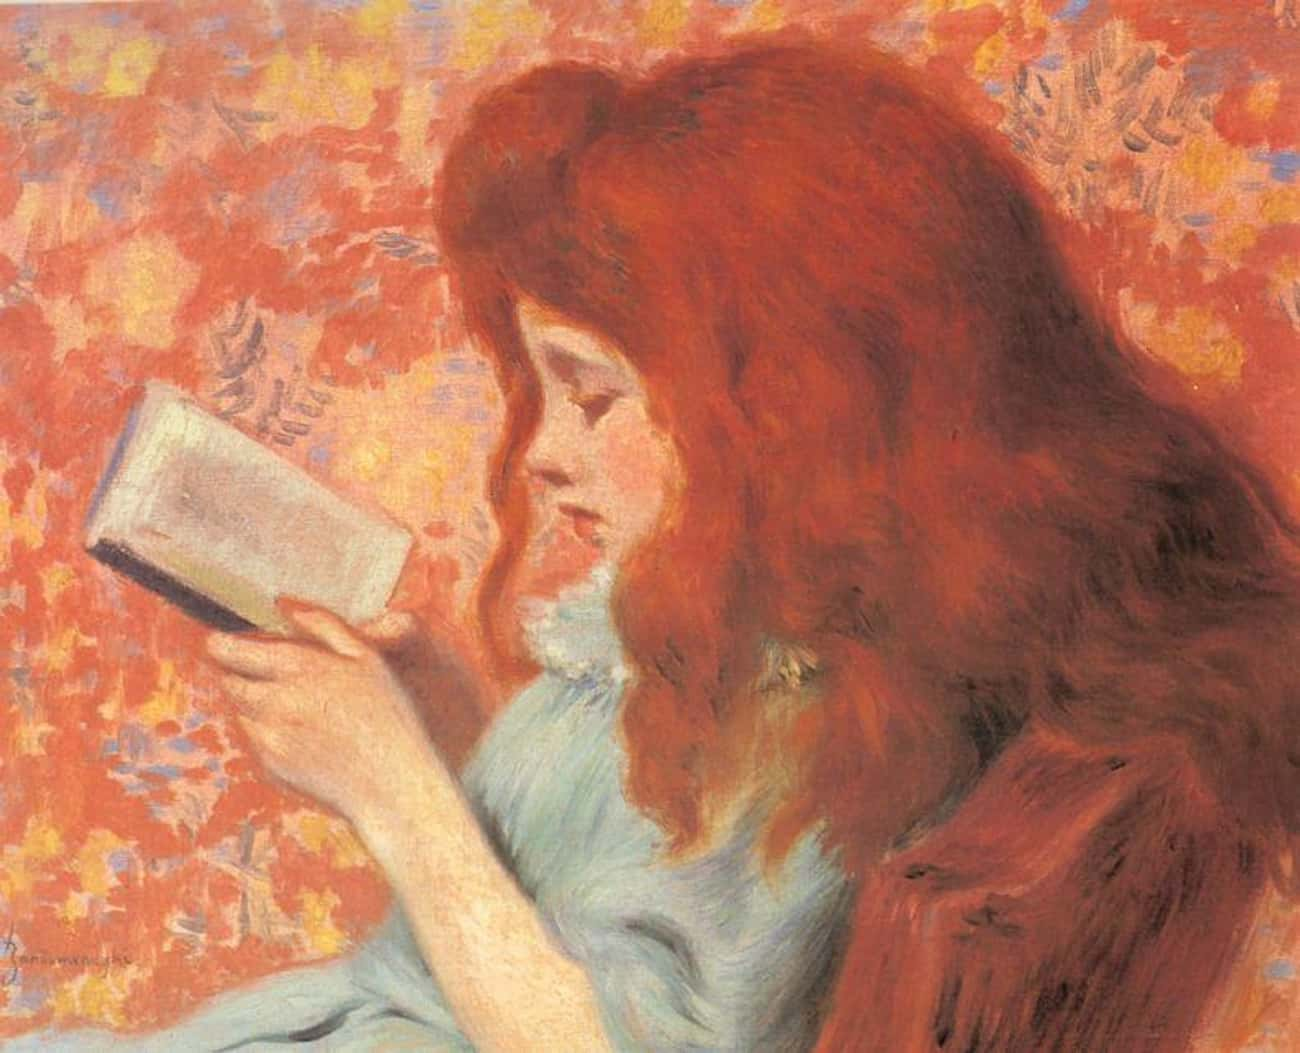 Red-Haired People Originated I is listed (or ranked) 3 on the list 11 Totally Unfounded Things People Believed About Redheads